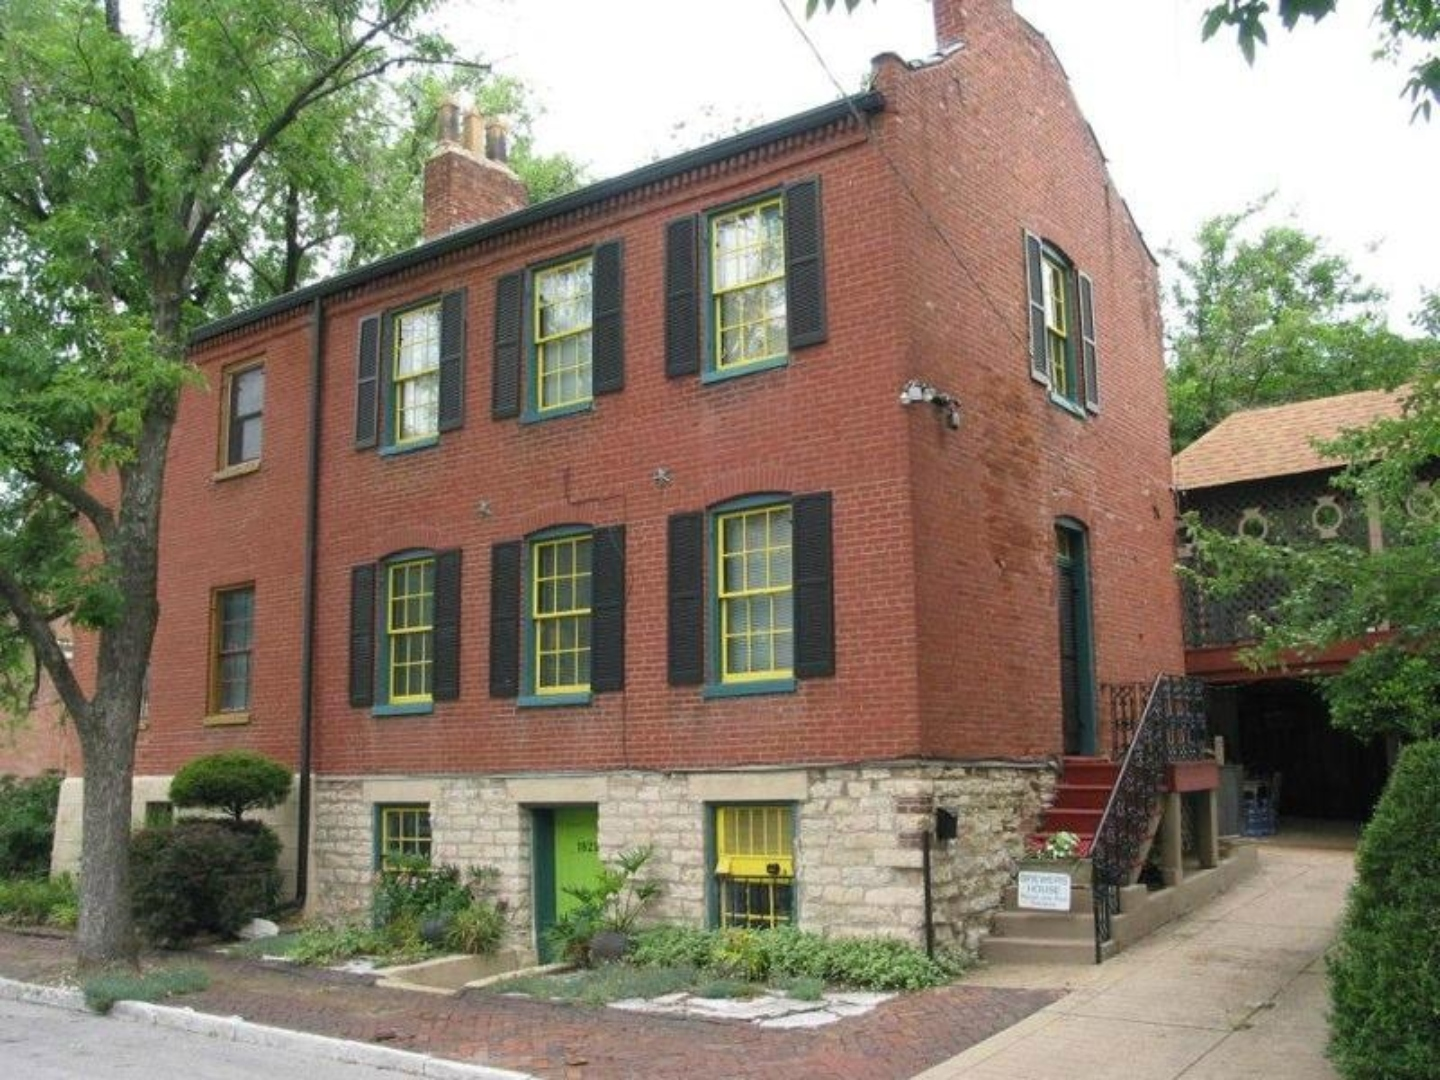 A large brick building at Brewers House Bed and Breakfast.